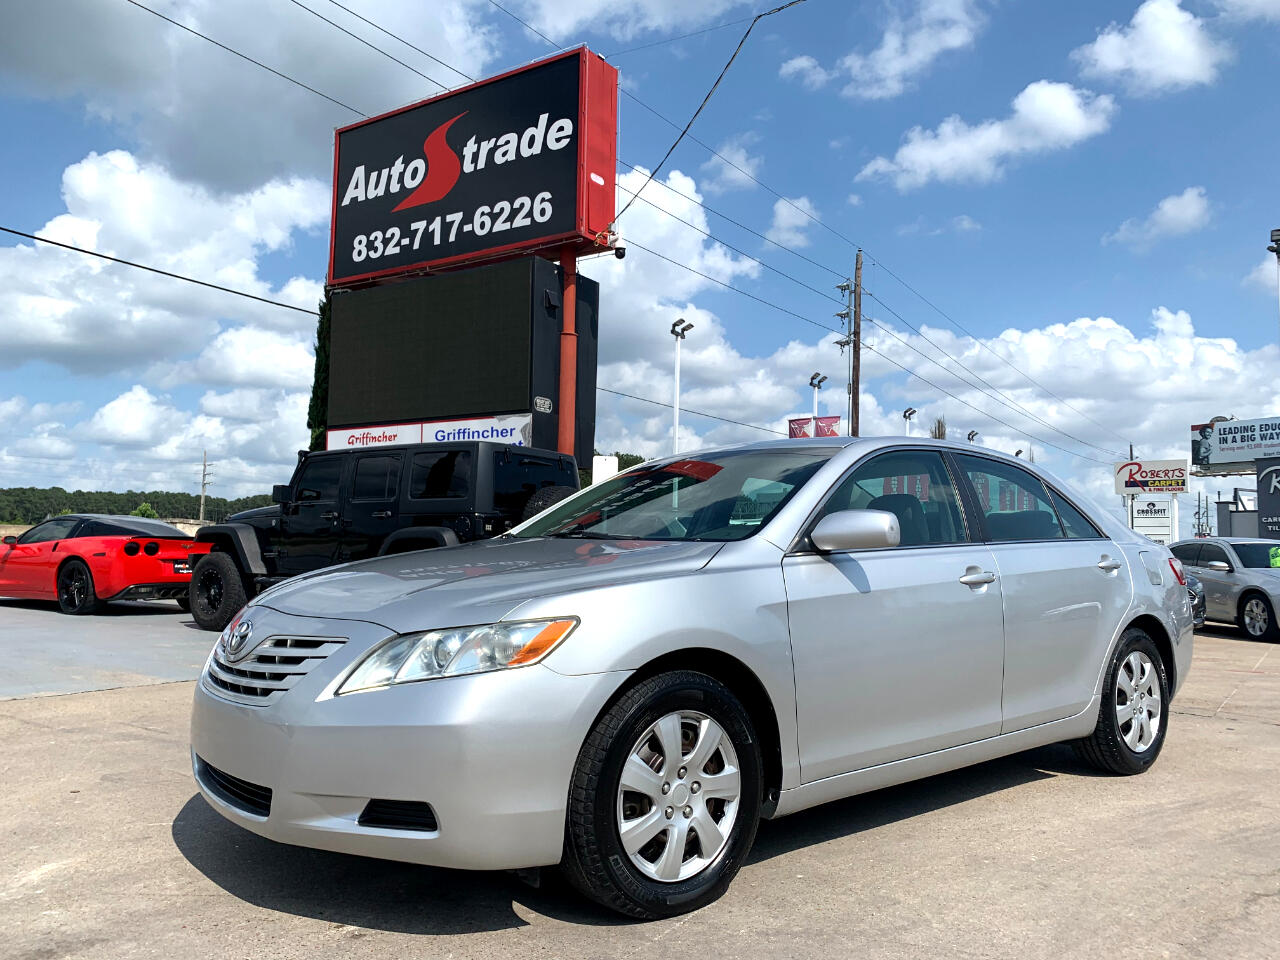 Toyota Camry 4dr Sdn I4 Man LE (Natl) 2008